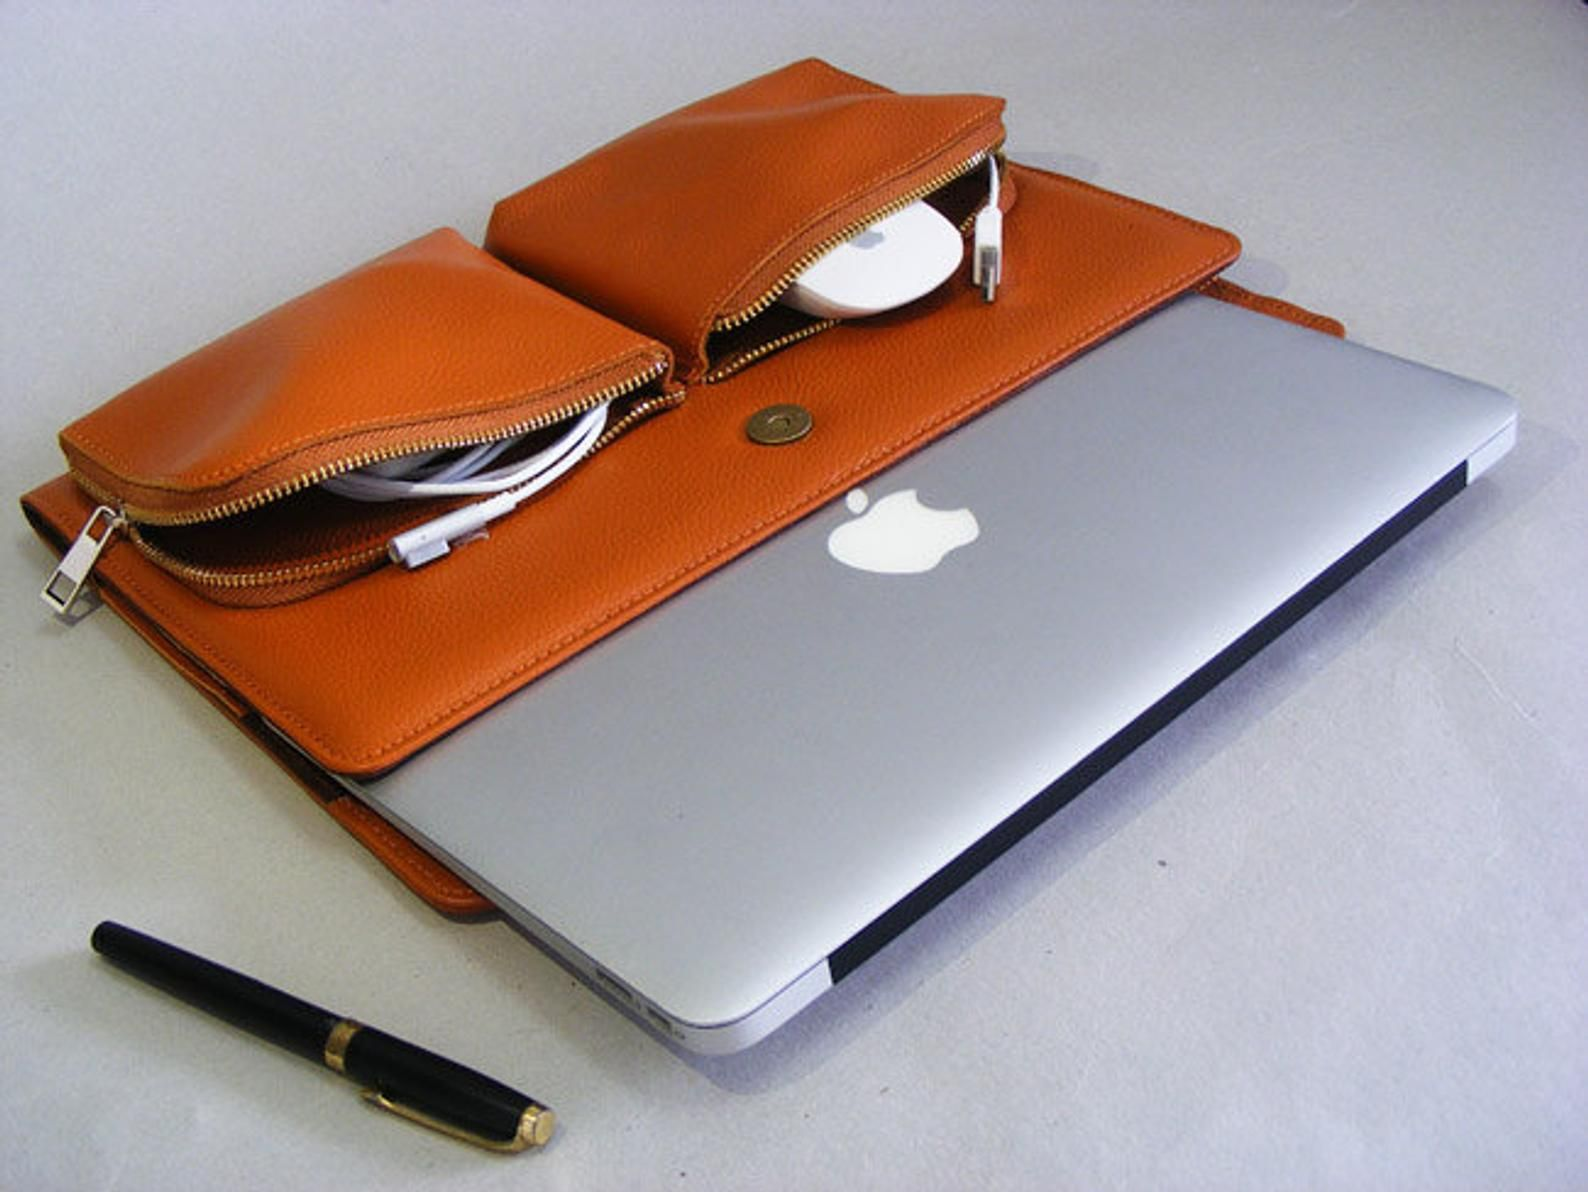 Apple Macbook Carrying Leather Case Folio for Macbook 12